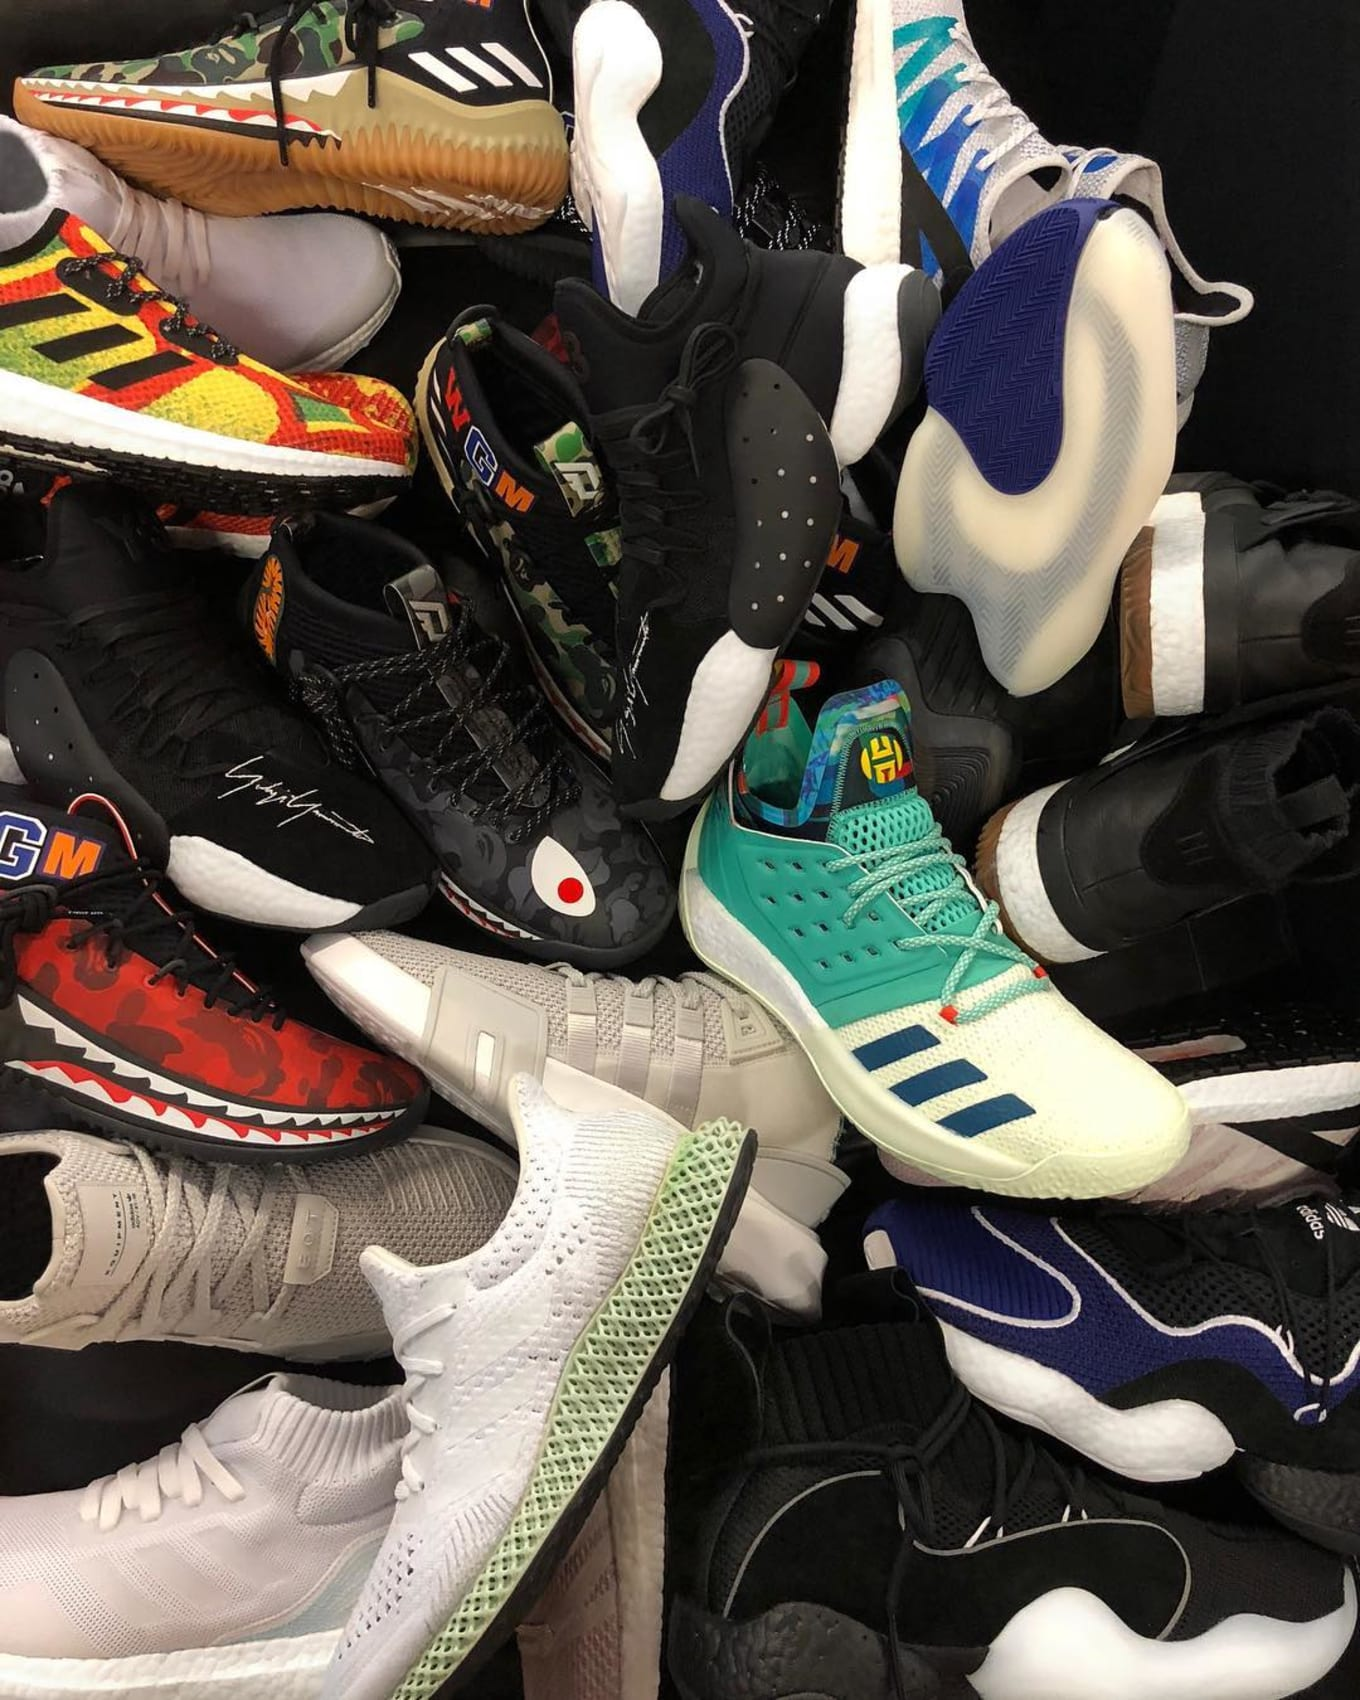 brand new 516f7 a66d2 Adidas 747 All-Star Sneaker Releases   Sole Collector